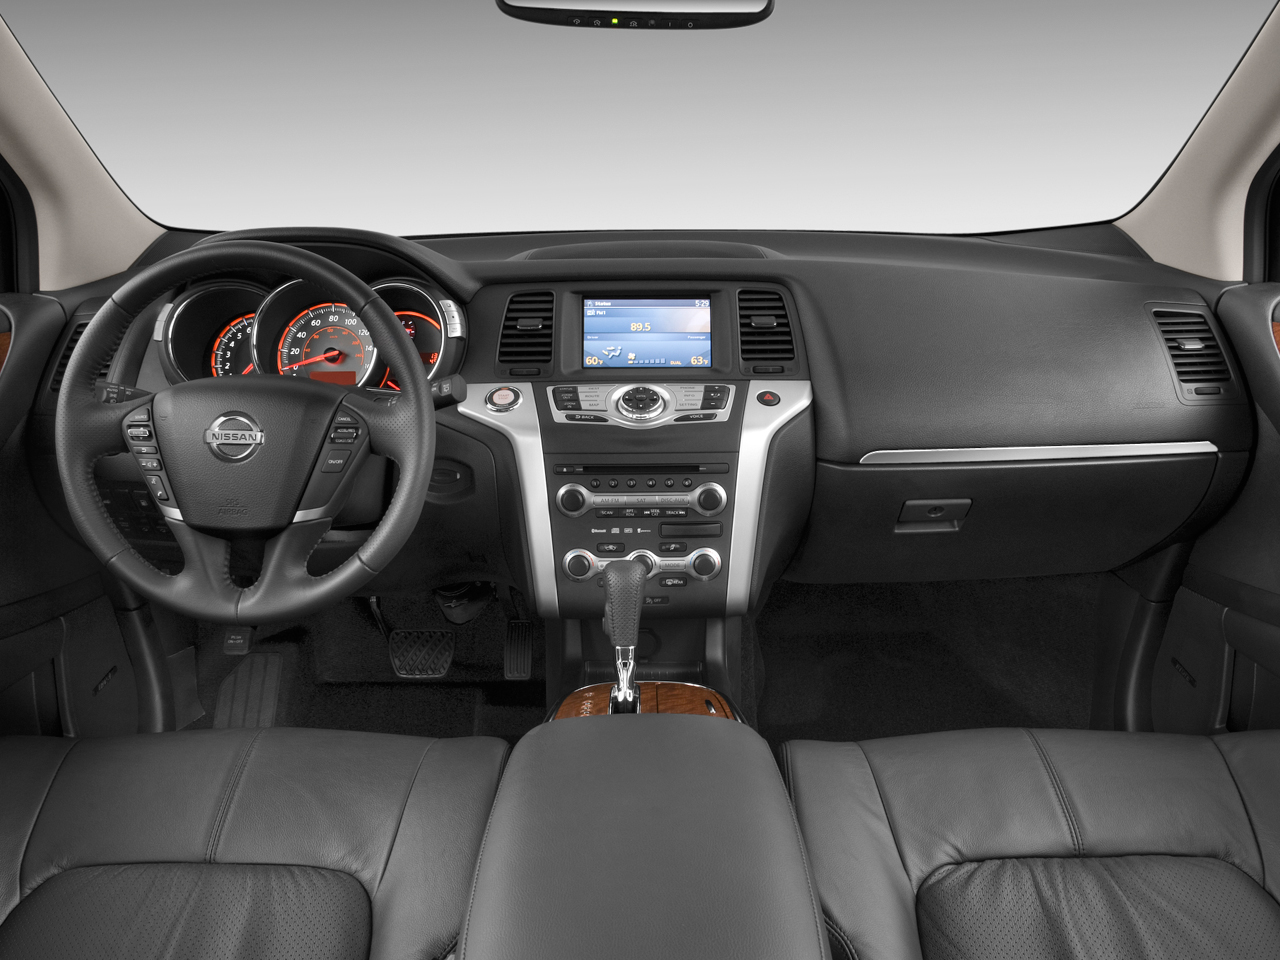 2009 nissan murano nissan crossover suv review. Black Bedroom Furniture Sets. Home Design Ideas